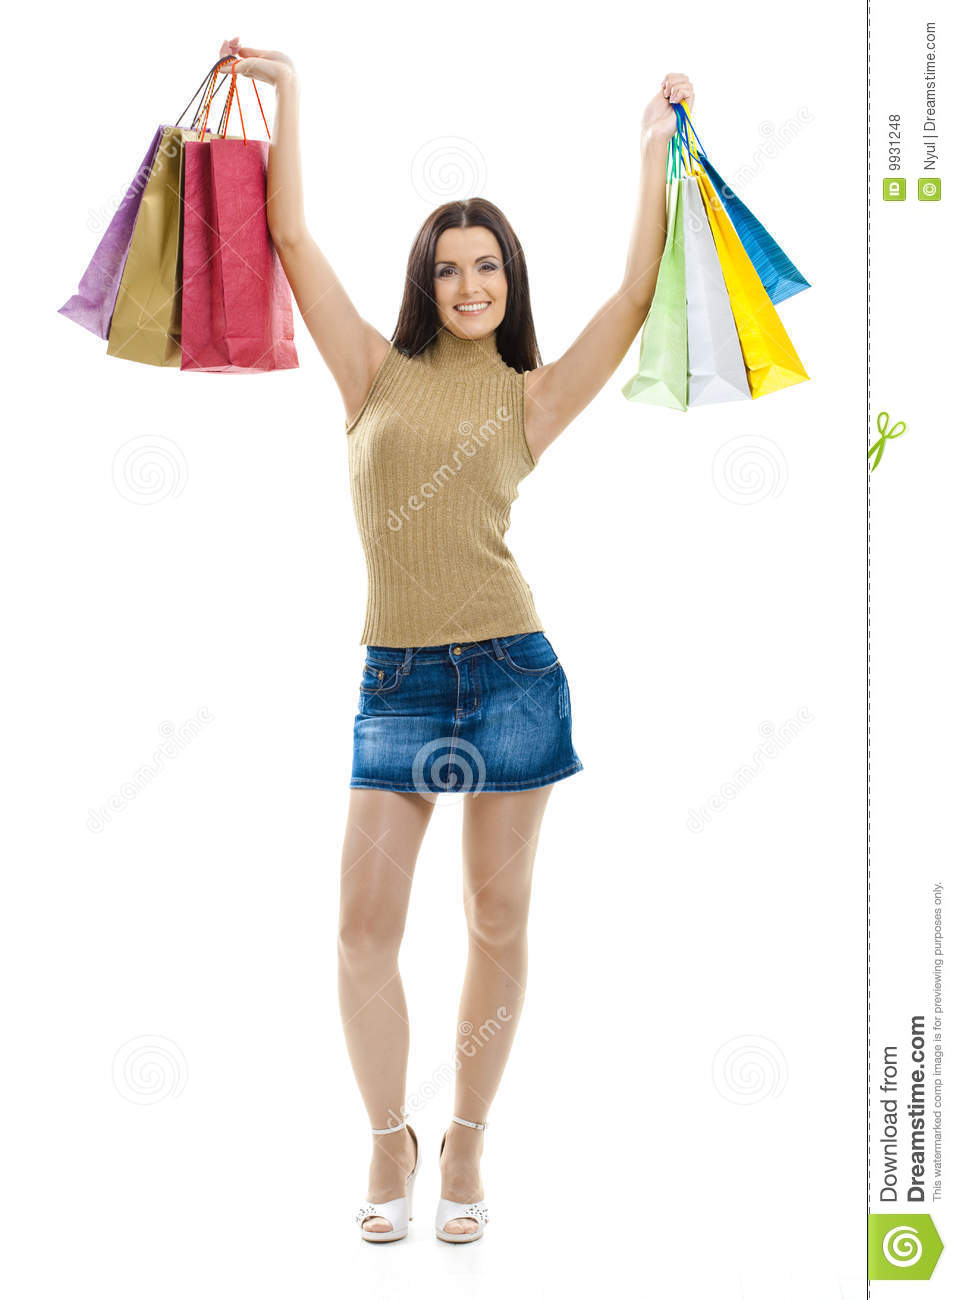 Innovative WomanWithShoppingBags1jpg